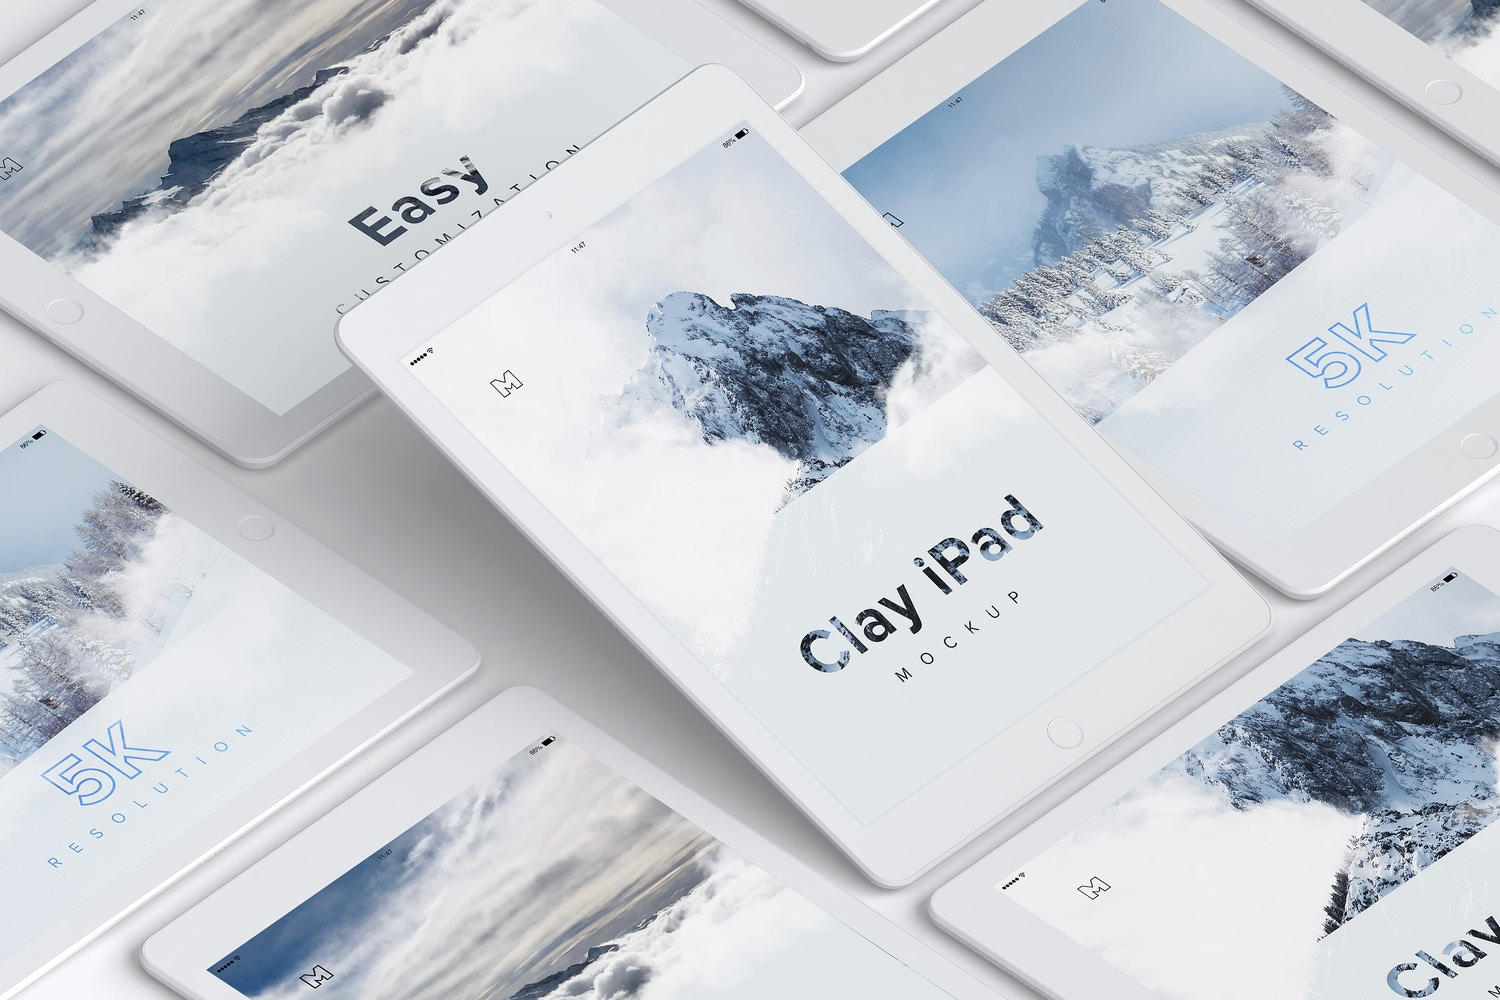 Clay iPad 9.7 Mockup 05 by Original Mockups on Original Mockups